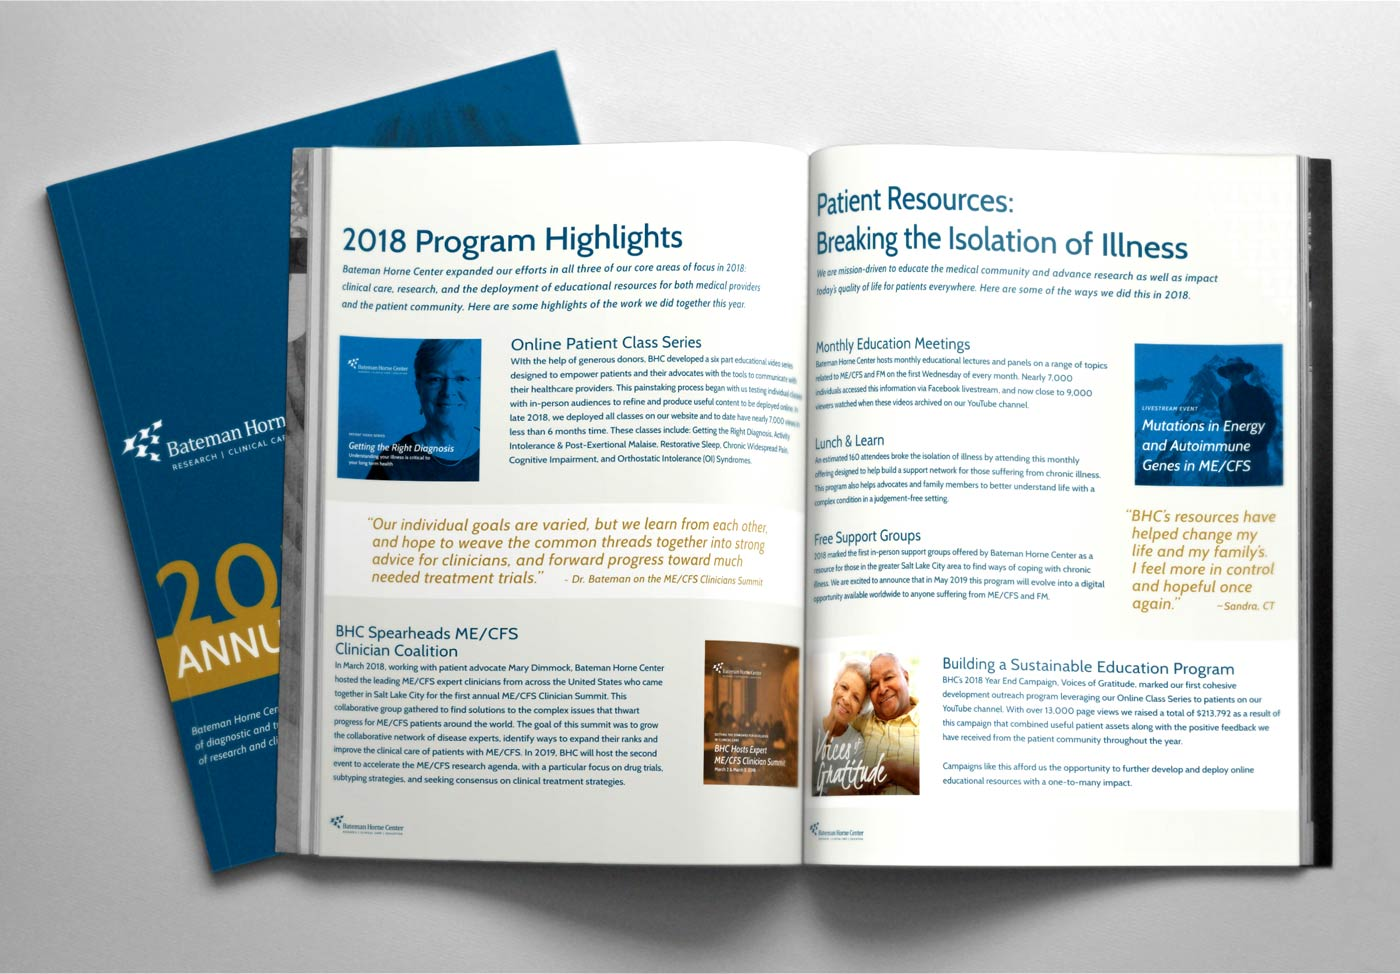 Annual report, presentation deck, and book design, layout and production for nonprofits